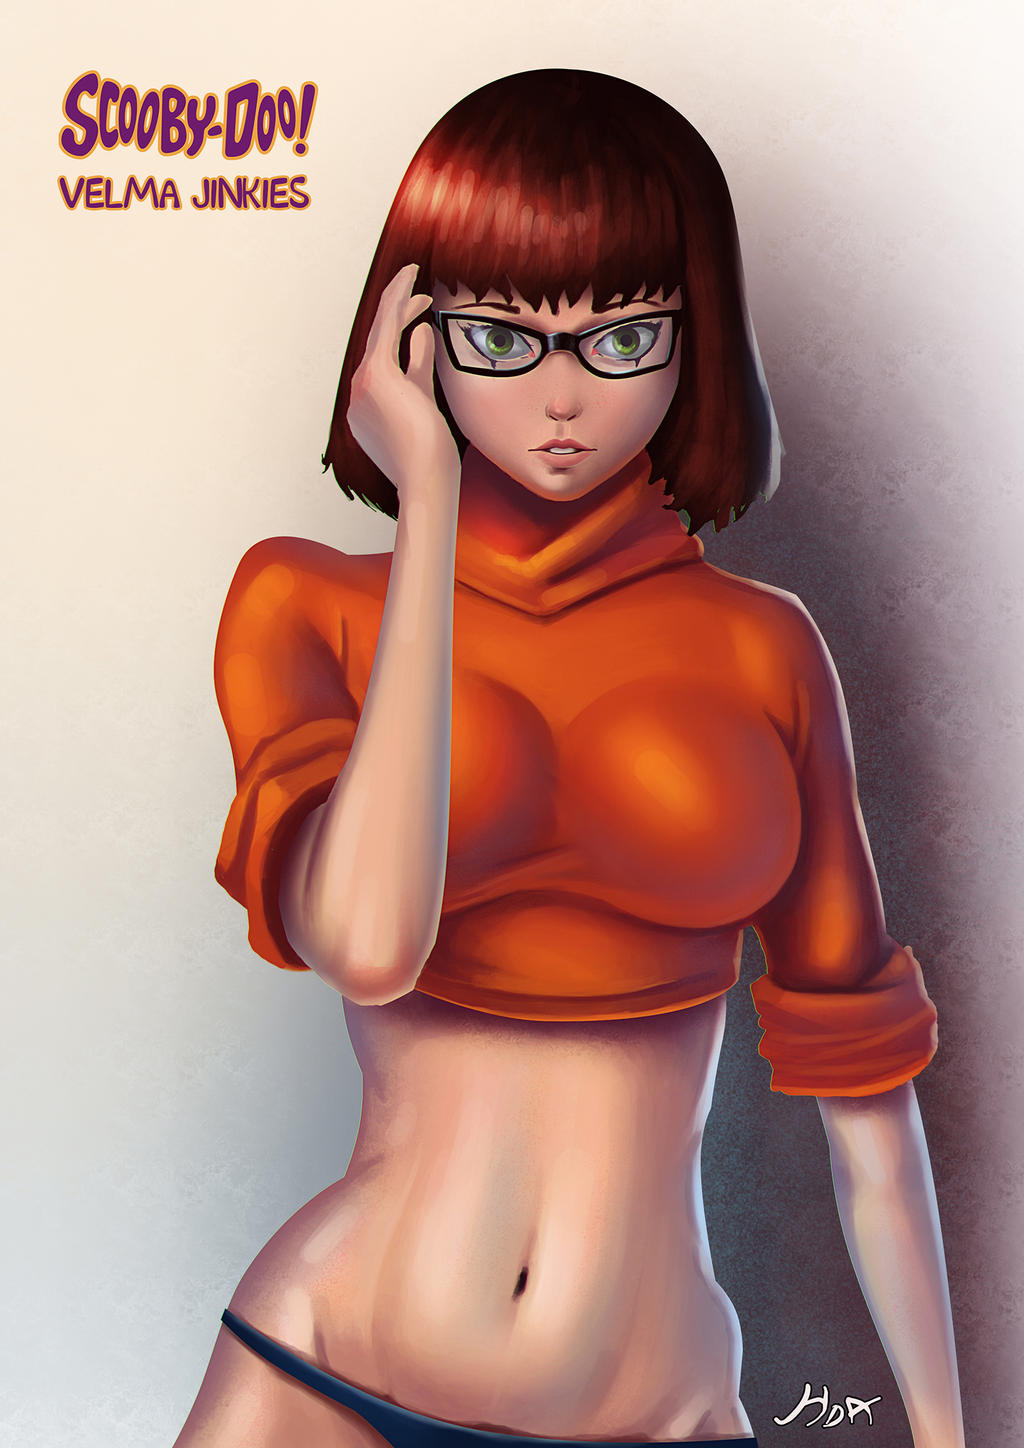 Apologise, Scooby doo velma hot ass are absolutely